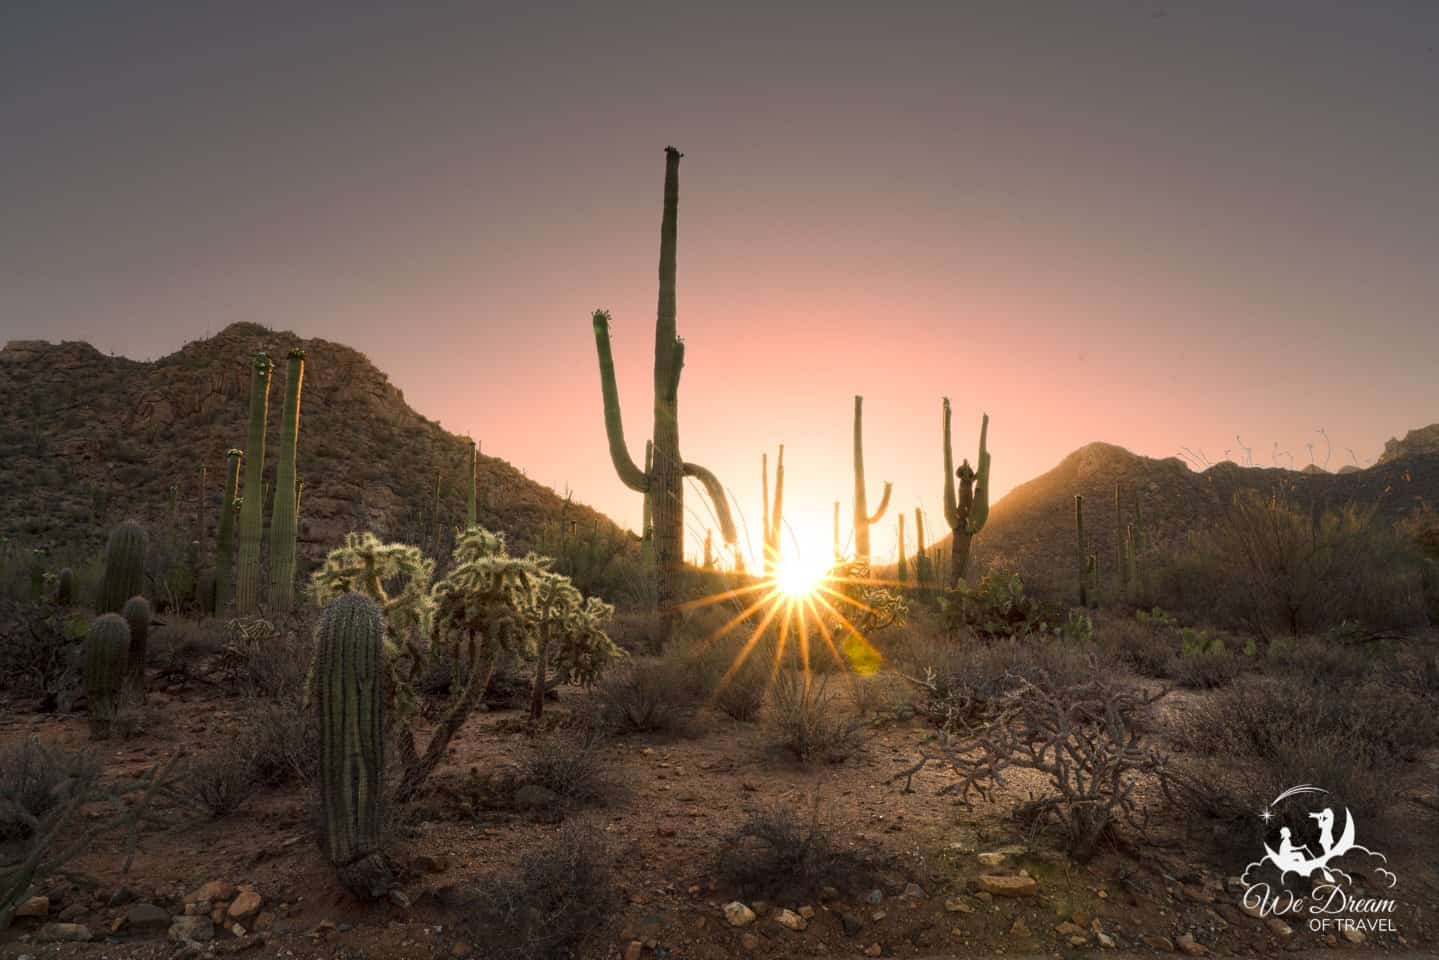 The sun rises amongst the saguaro cacti from Sus Picnic Area in Saguaro West.